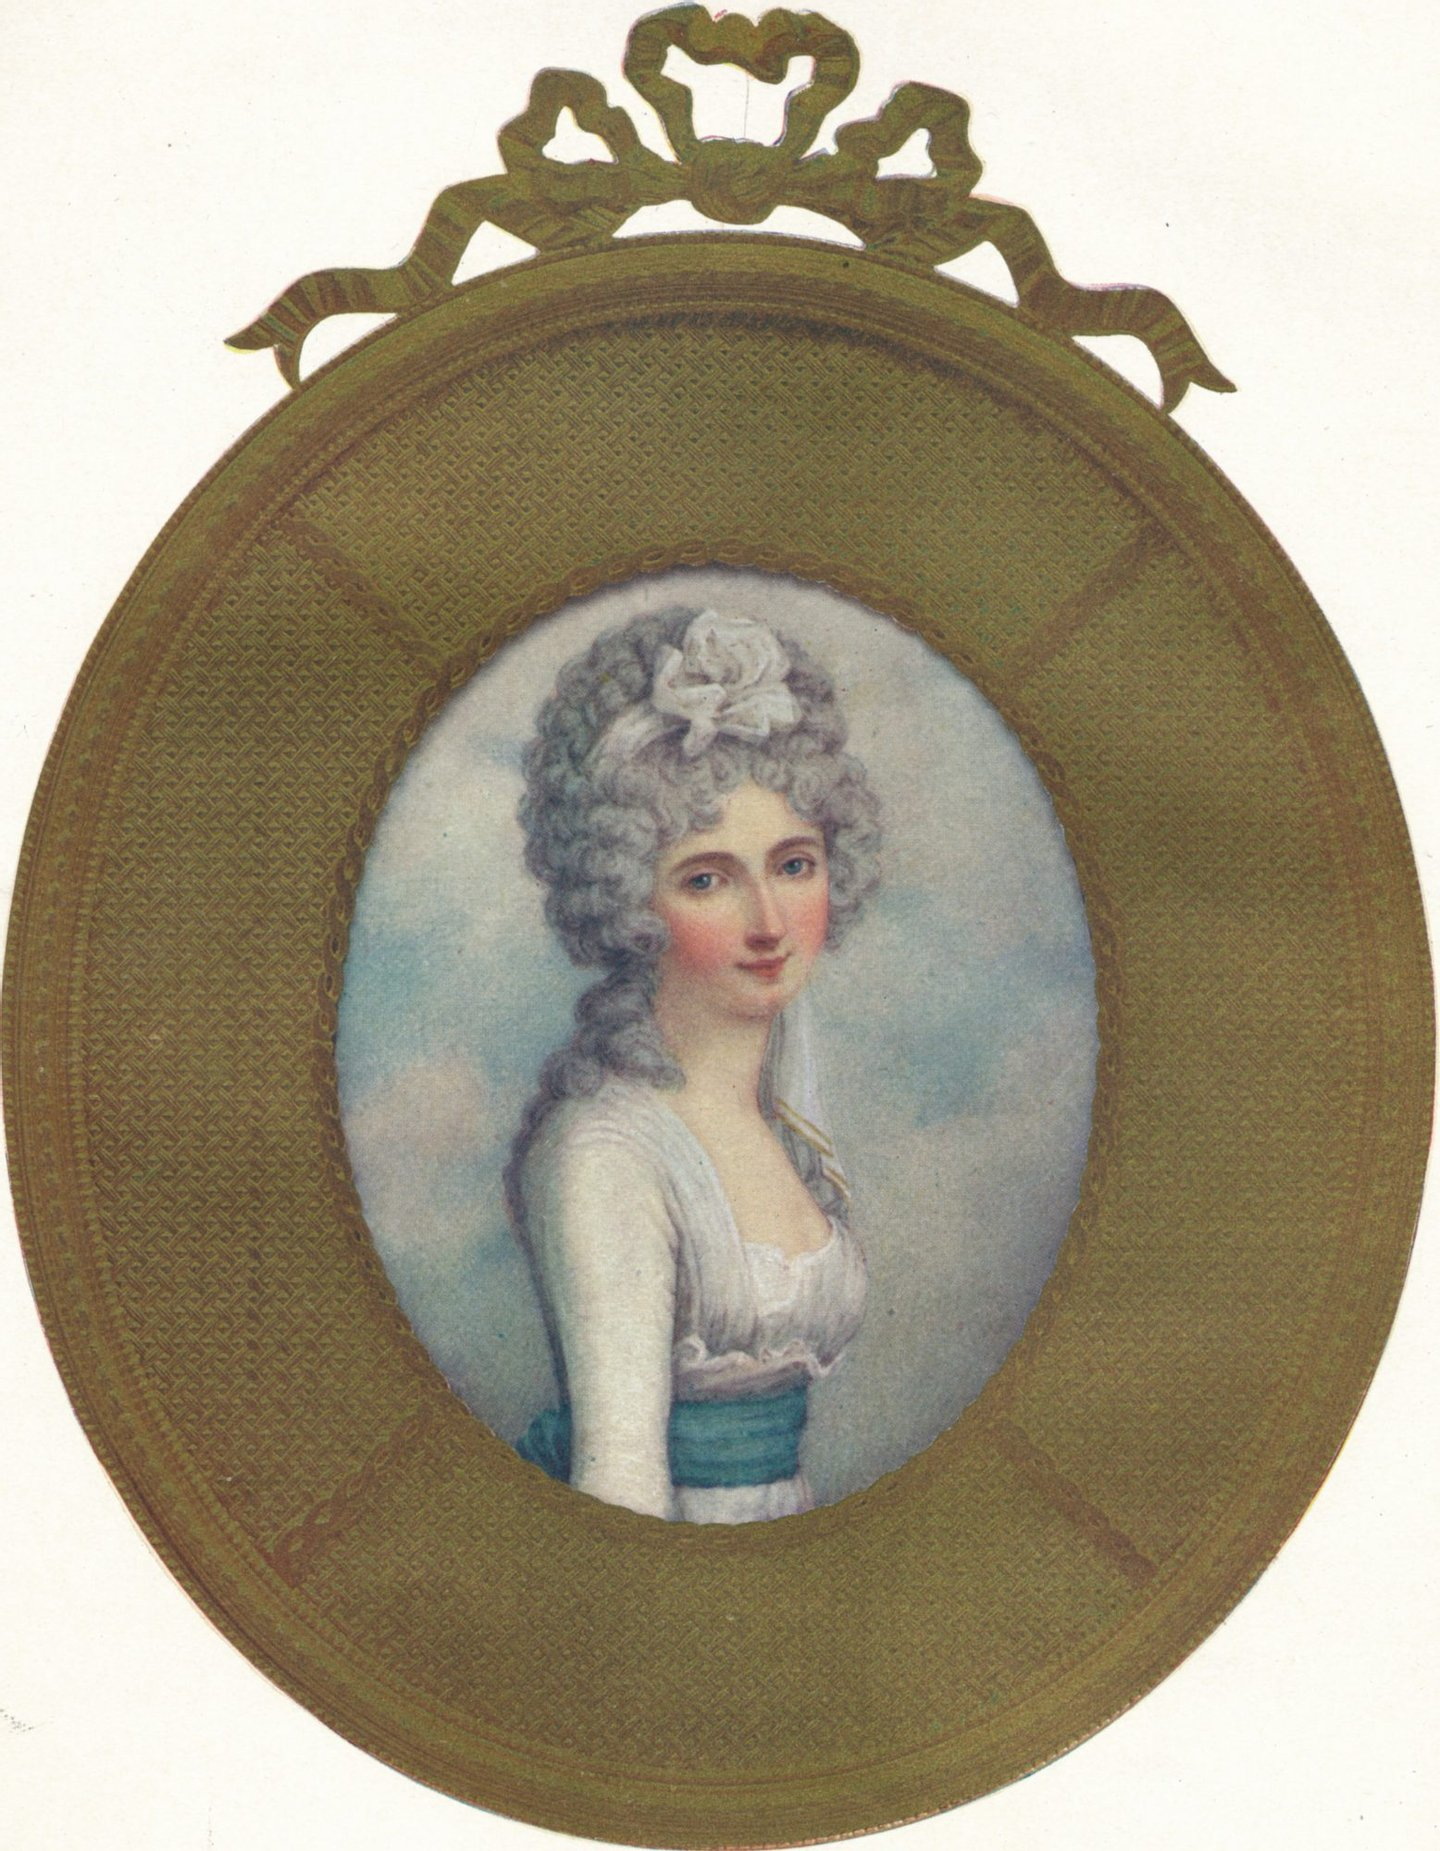 Miniature Portrait of Katherine, Lady Manners, Later Lady Huntingtower, 1787. From The Connoisseur Vol. XVIII [Otto Limited, London, 1907.] Artist: Richard Cosway (Photo by The Print Collector/Getty Images)